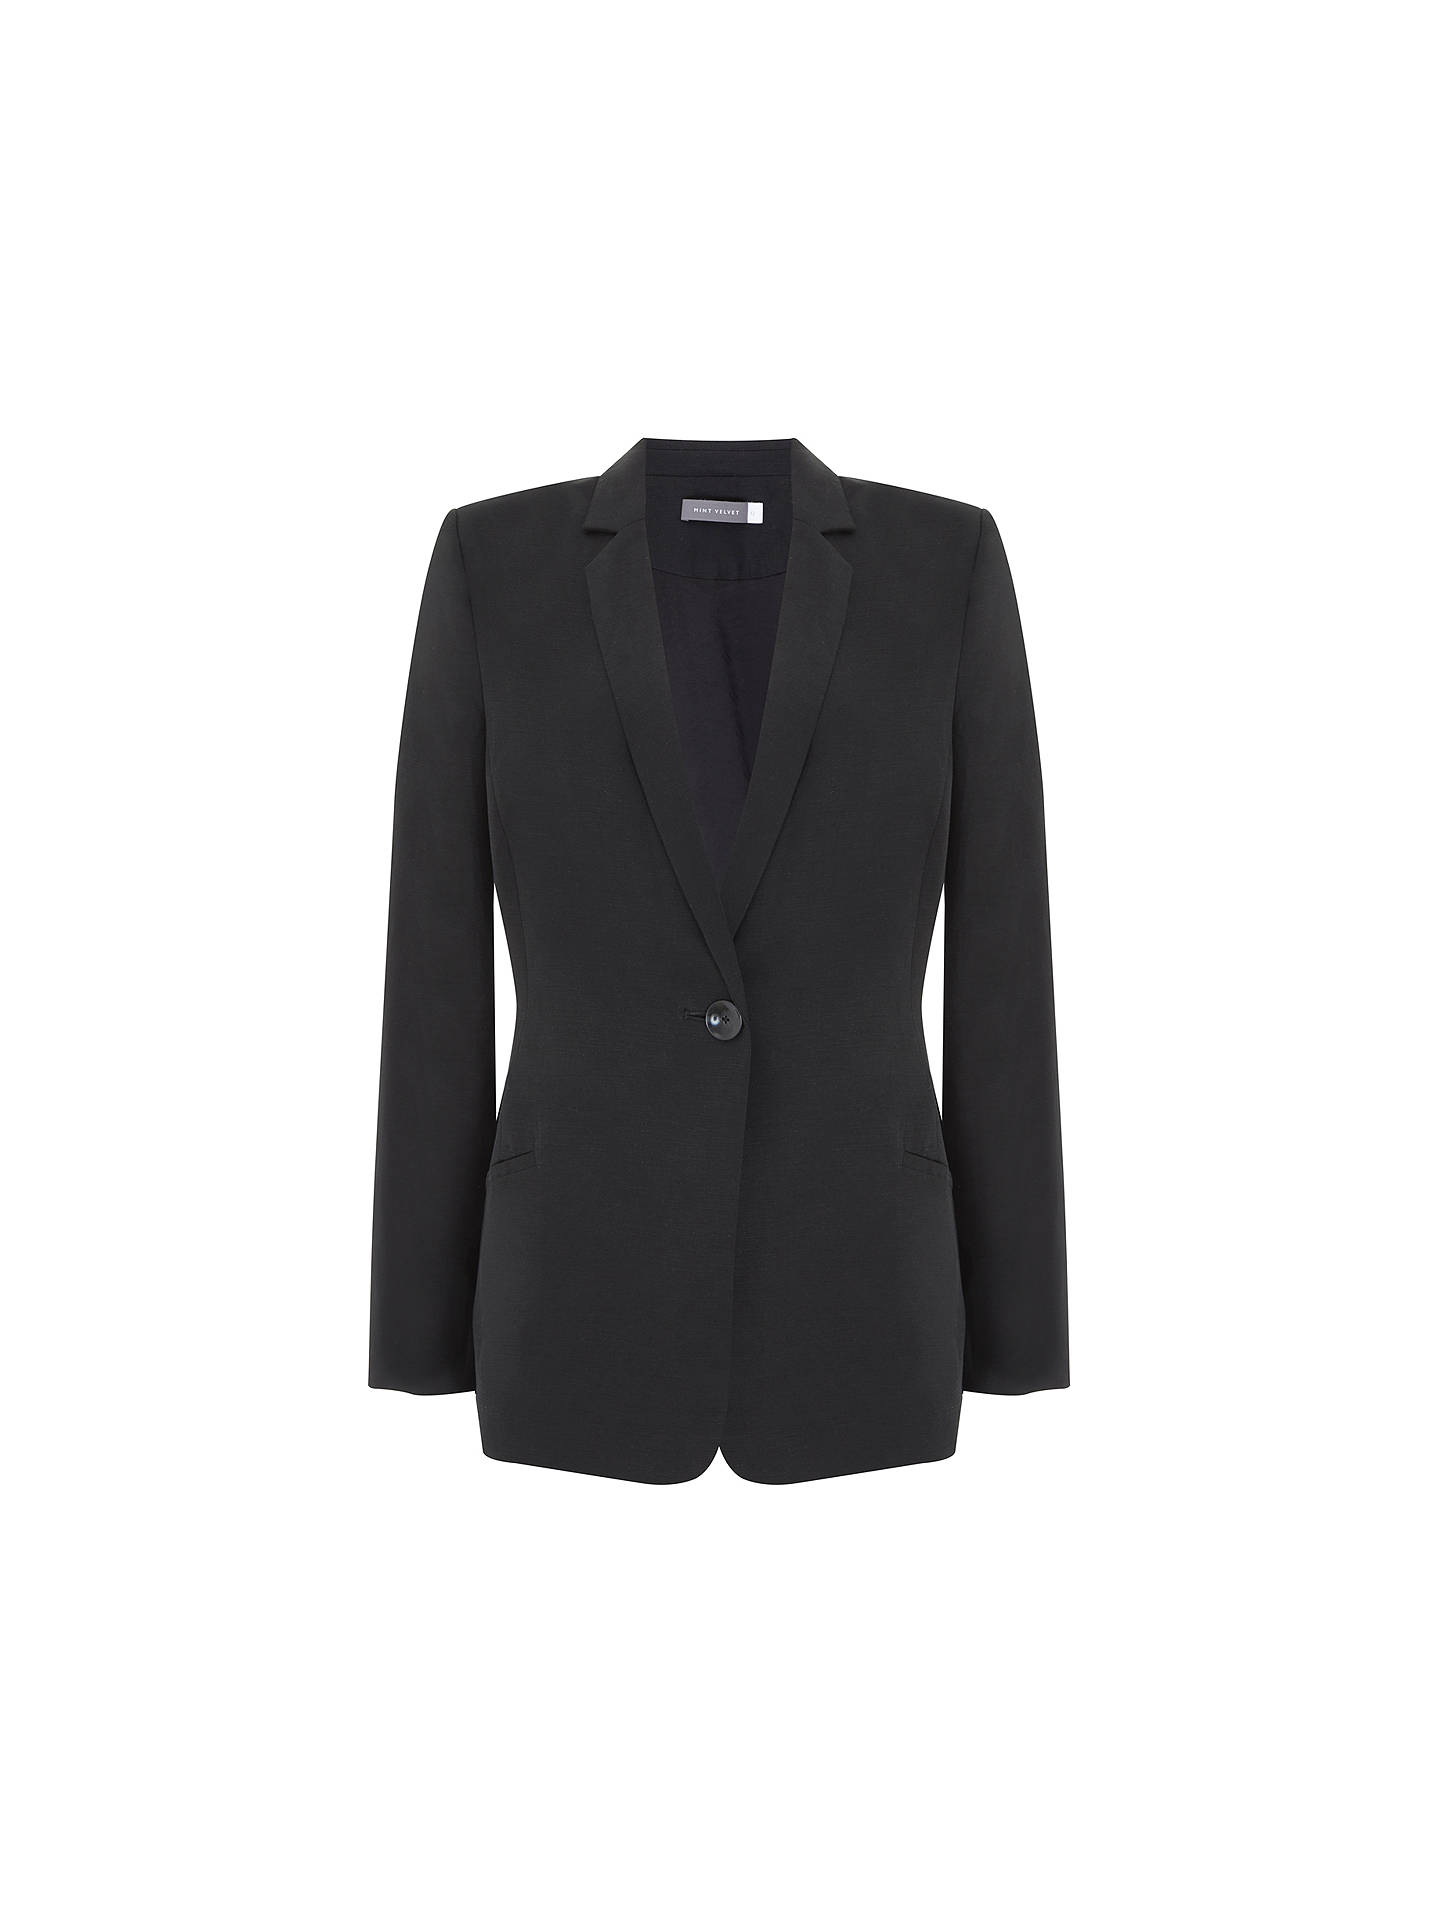 BuyMint Velvet Boyfriend Blazer, Black, 6 Online at johnlewis.com